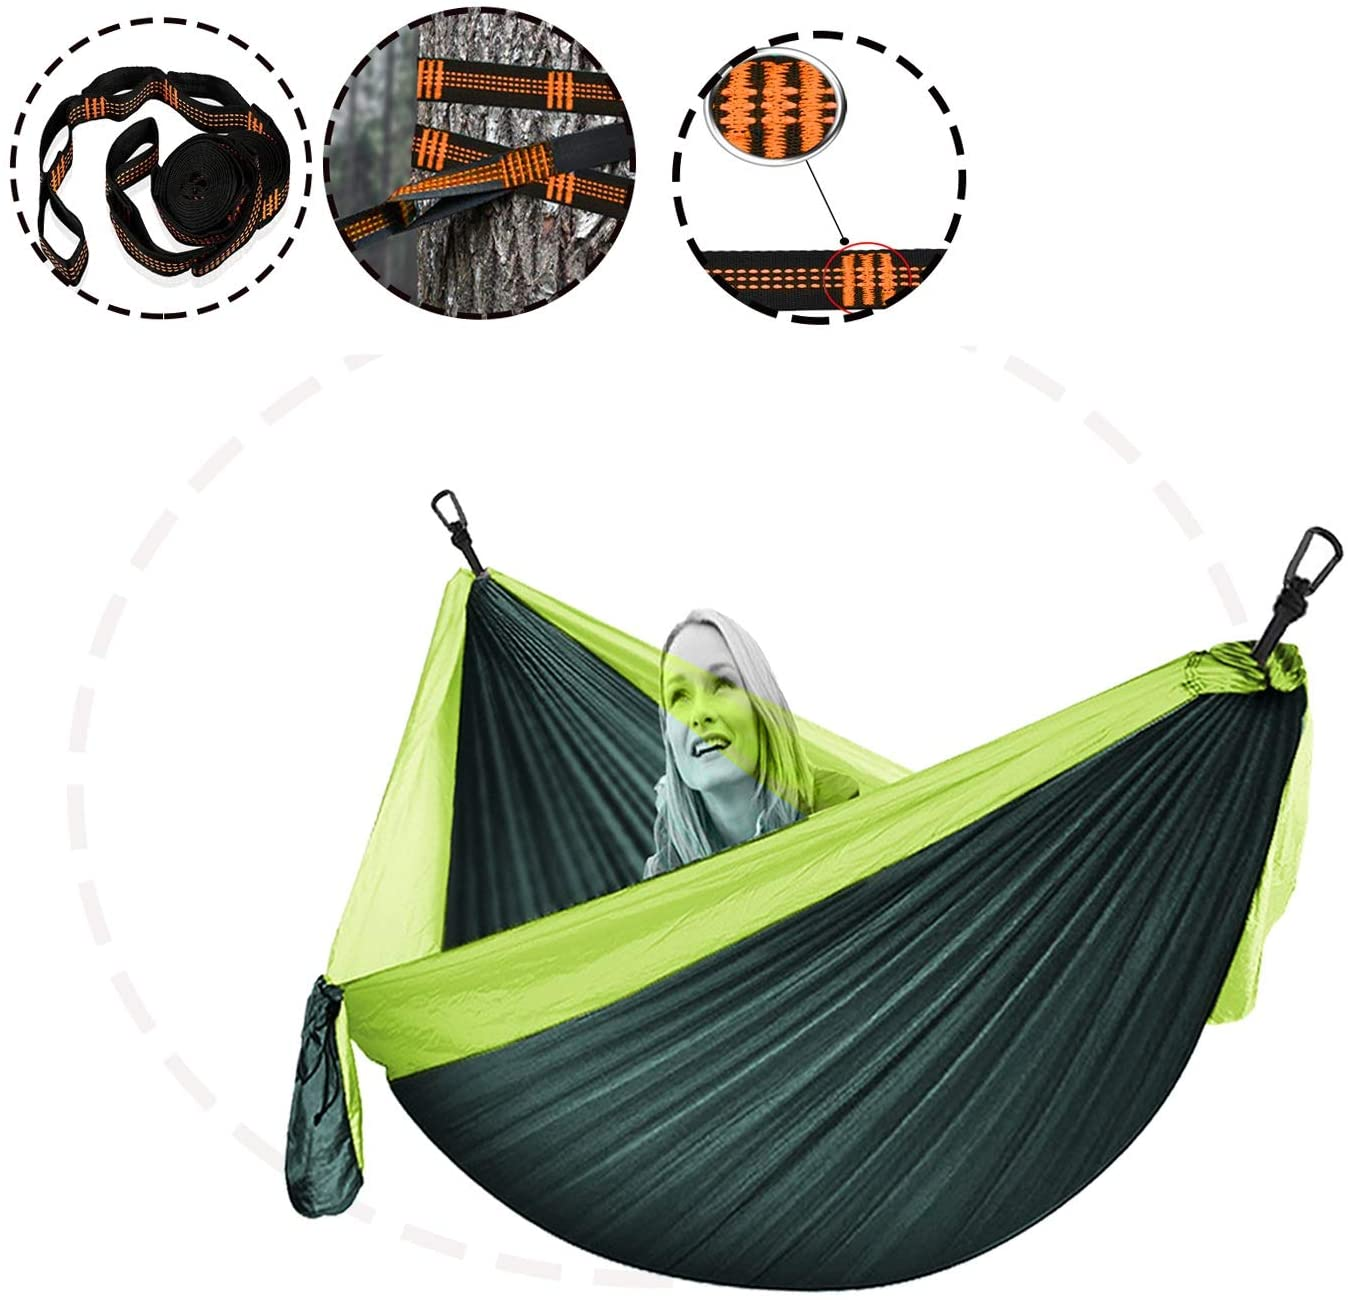 XXJF Portable Hammocks with 2 Tree Straps & Carabiners Reinforced,not to Tear Single Portable Hammocks Lightweight Nylon Parachute Fabric for Backpacking, Camping, Travel, Beach, Yard.